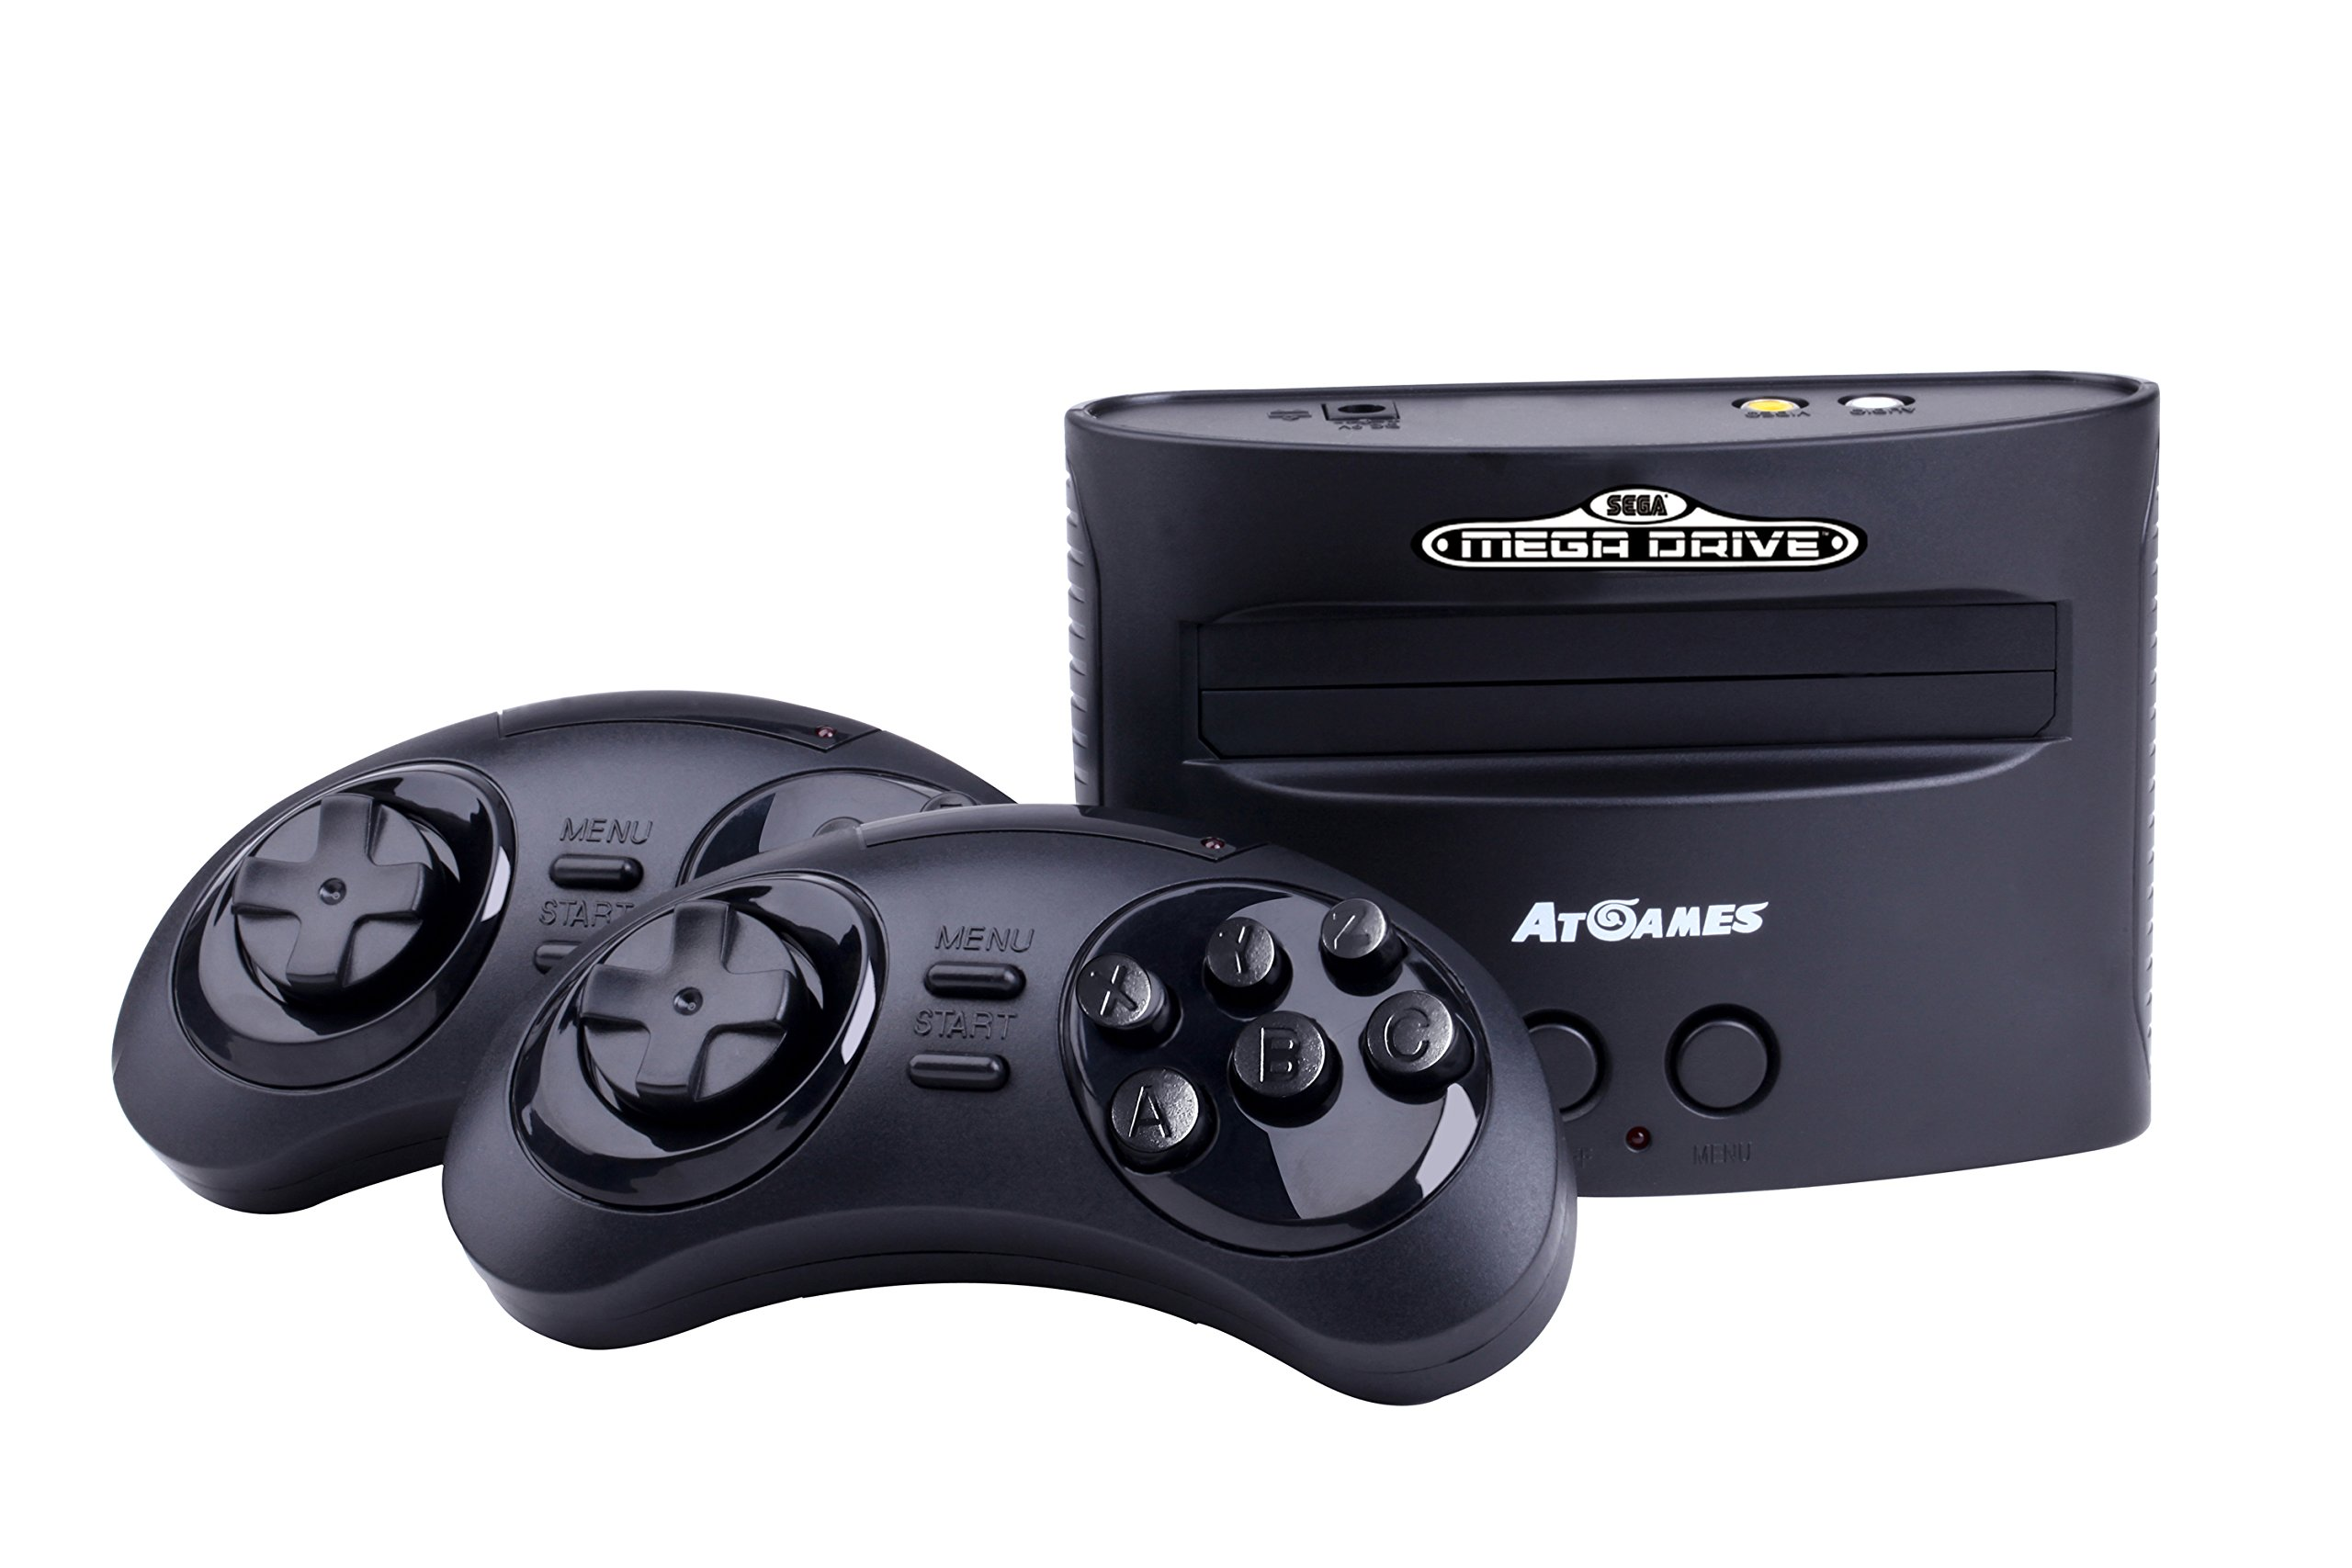 Sega Genesis Classic Game Console 2016 by At Games (Image #2)